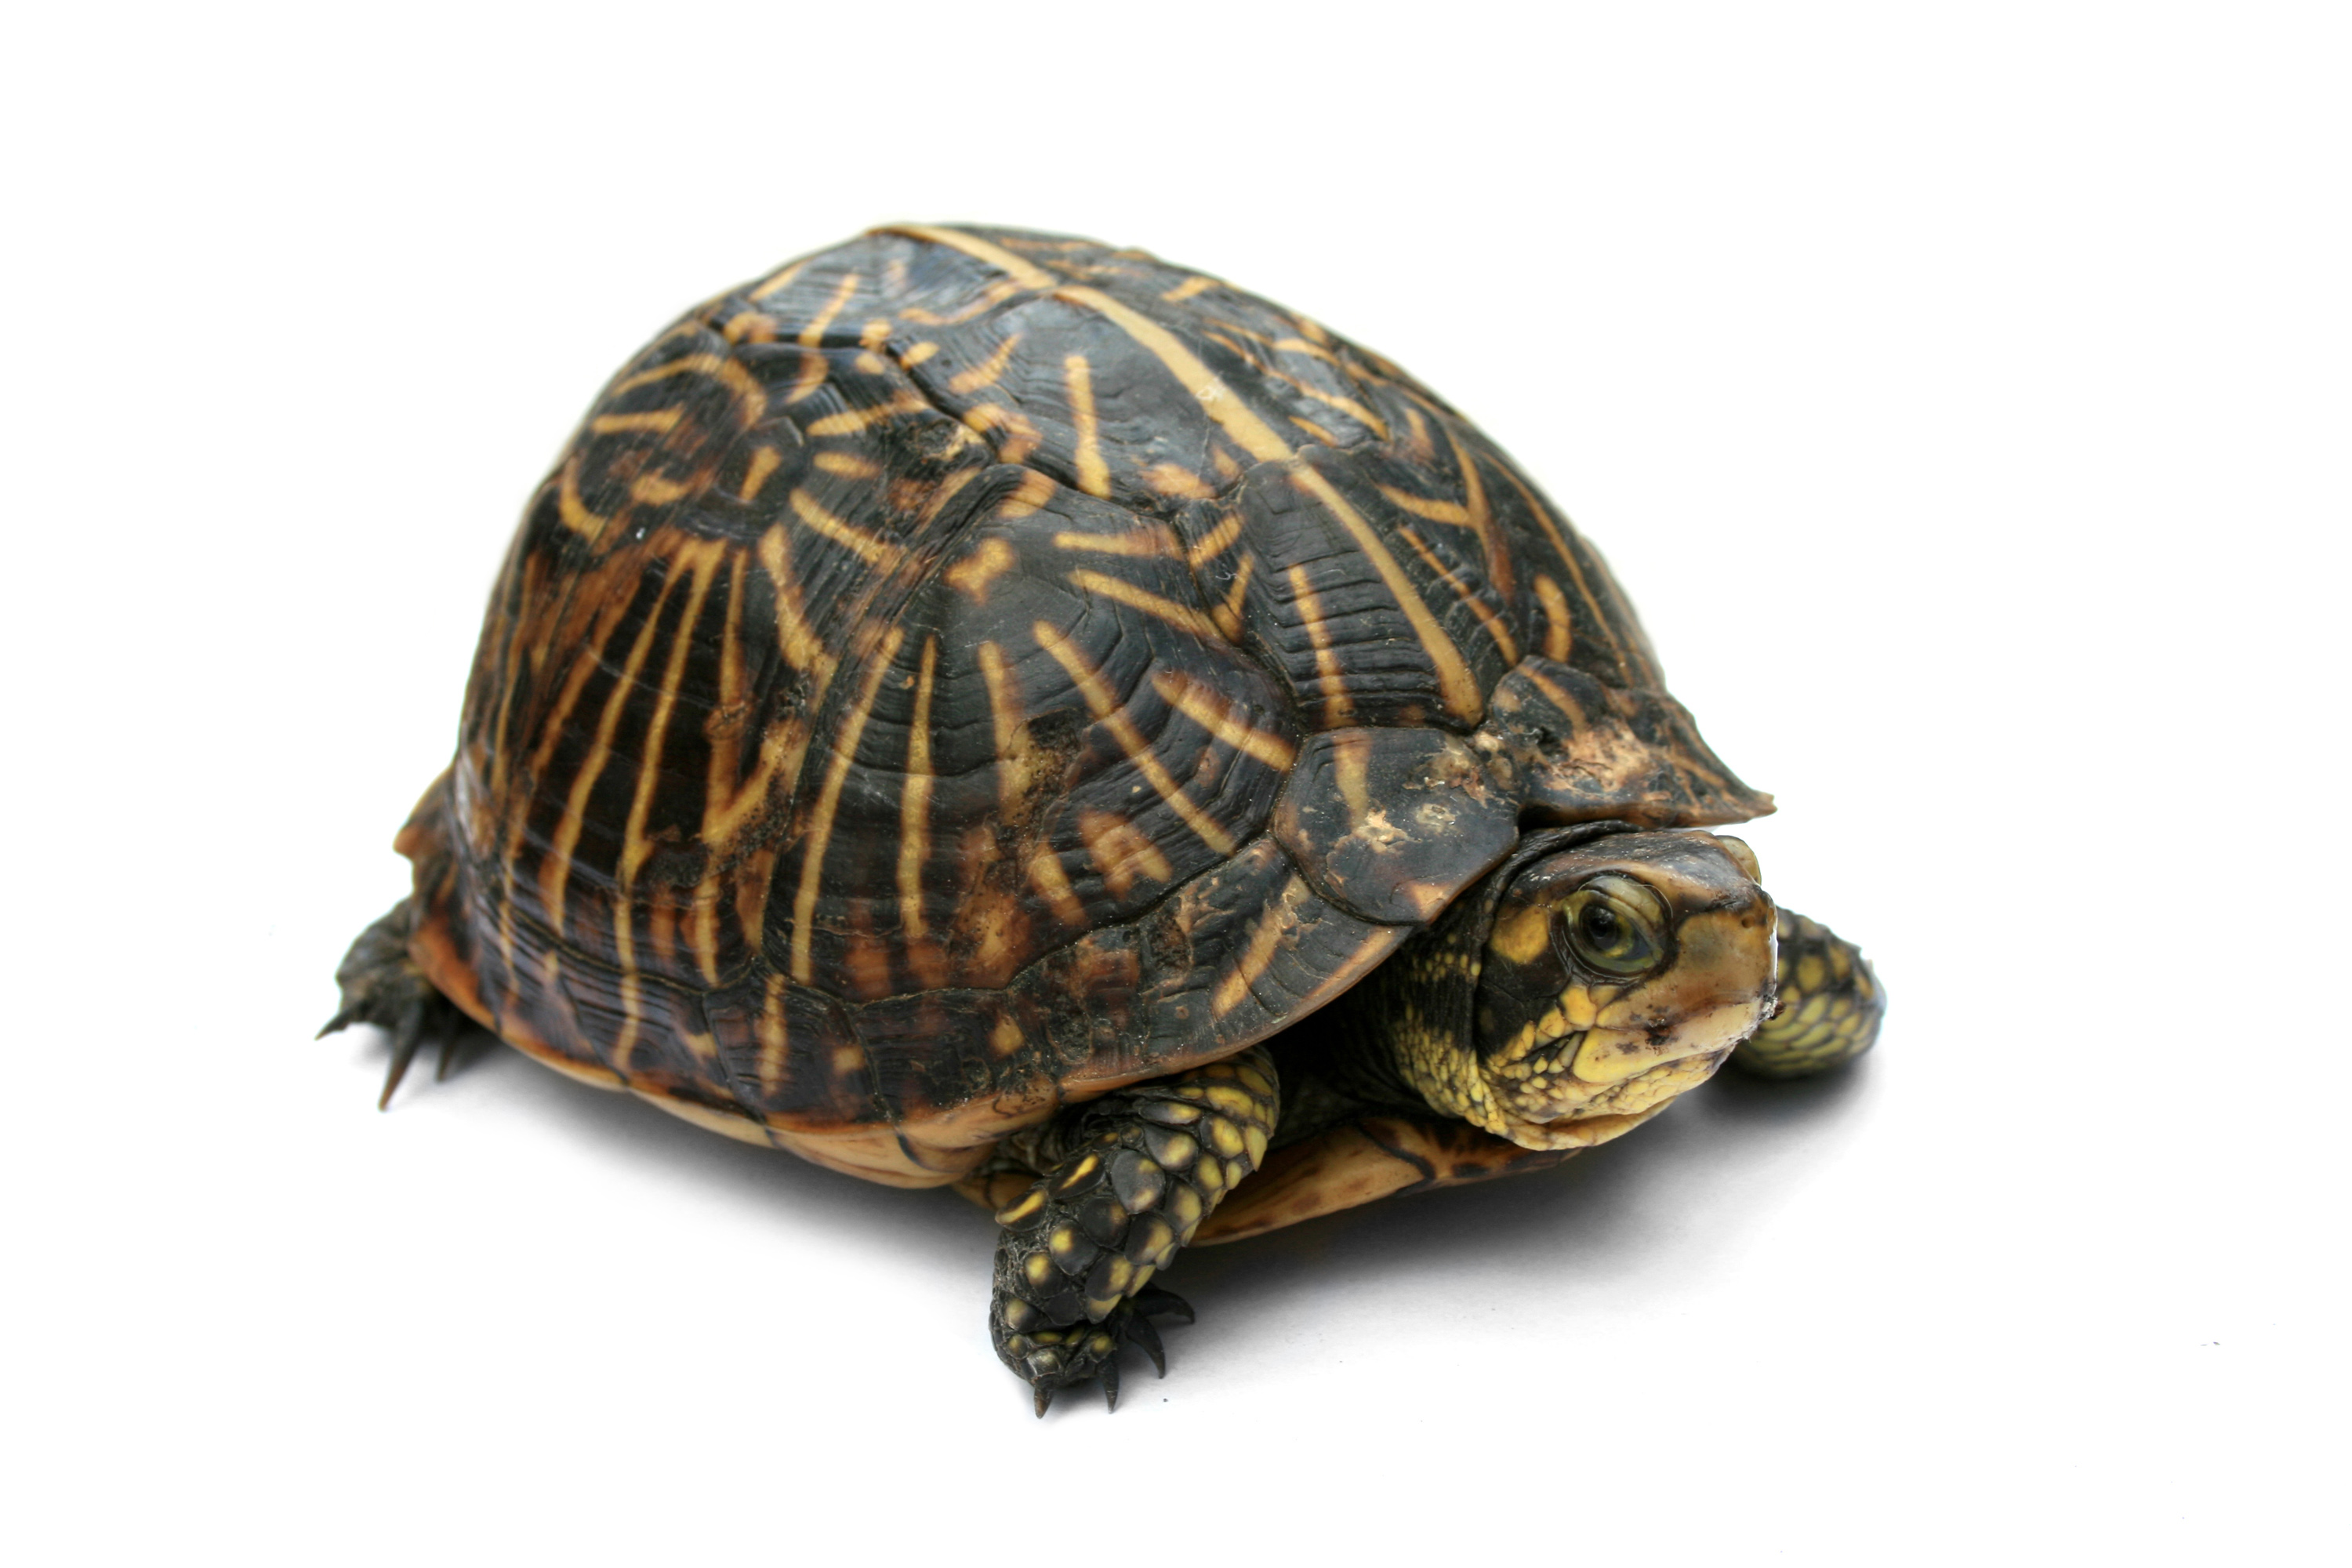 Box turtle - Wikipedia